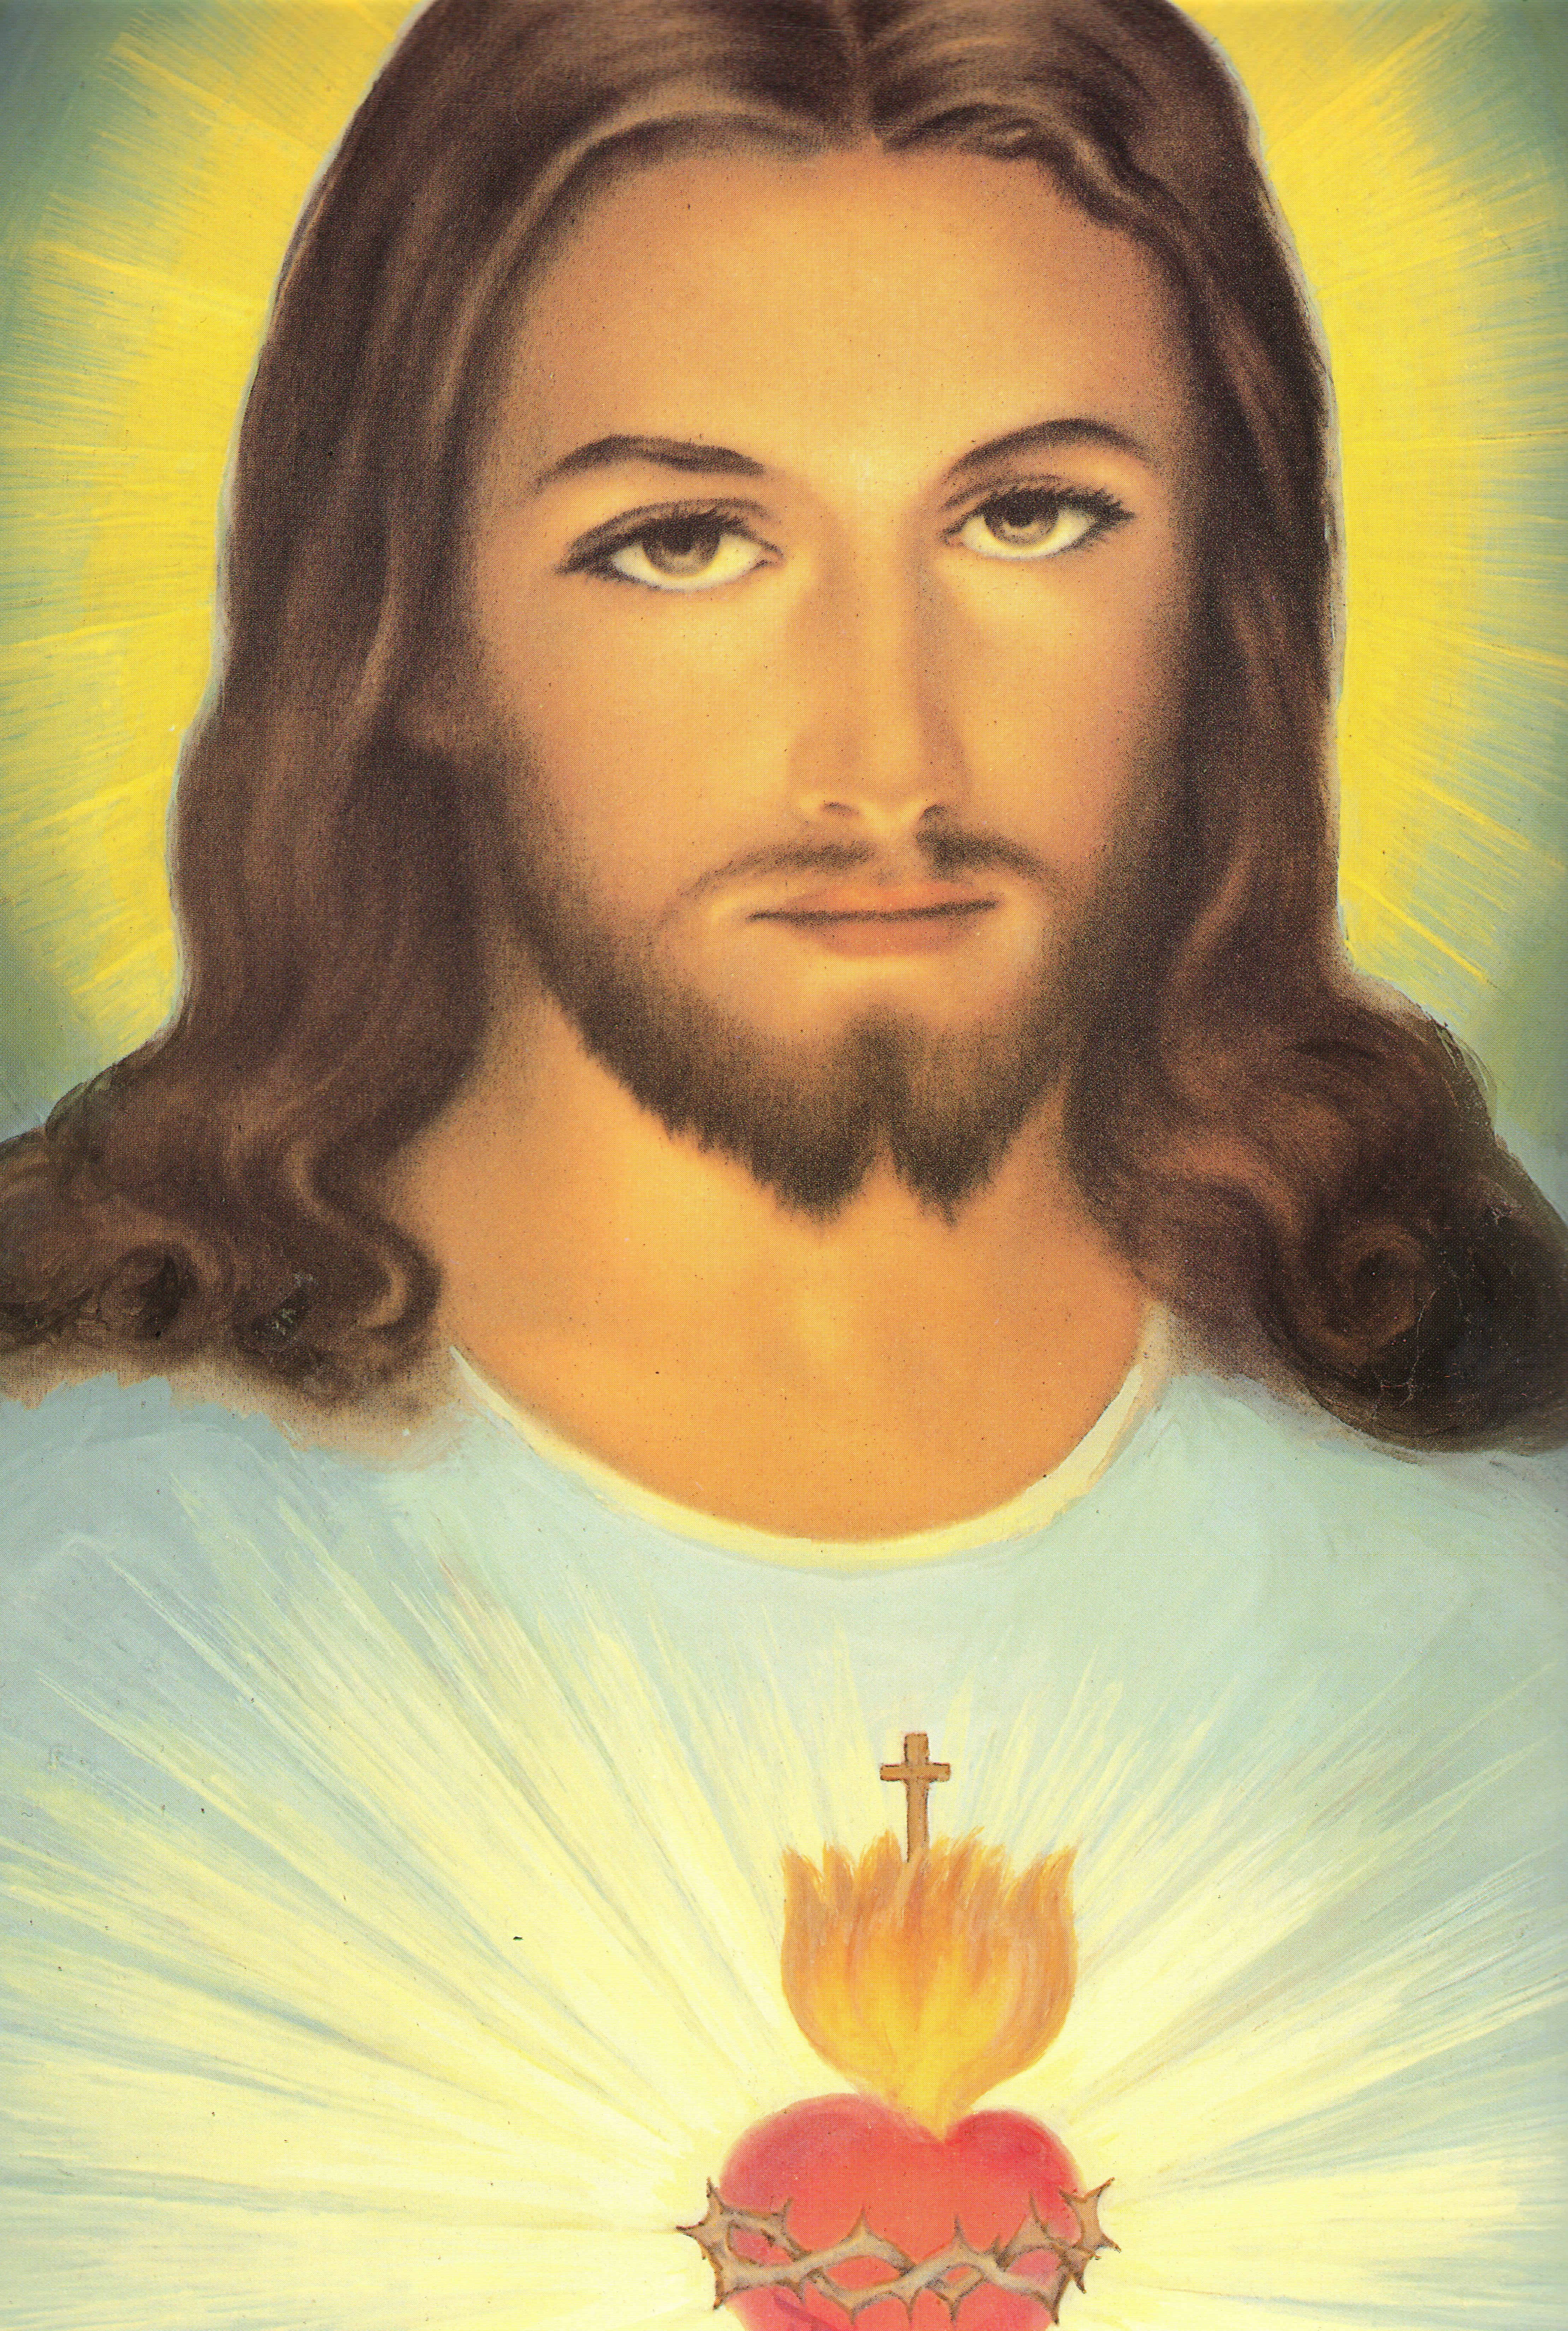 the sacred heart of jesus | tattoo ideas | pinterest | sacred heart